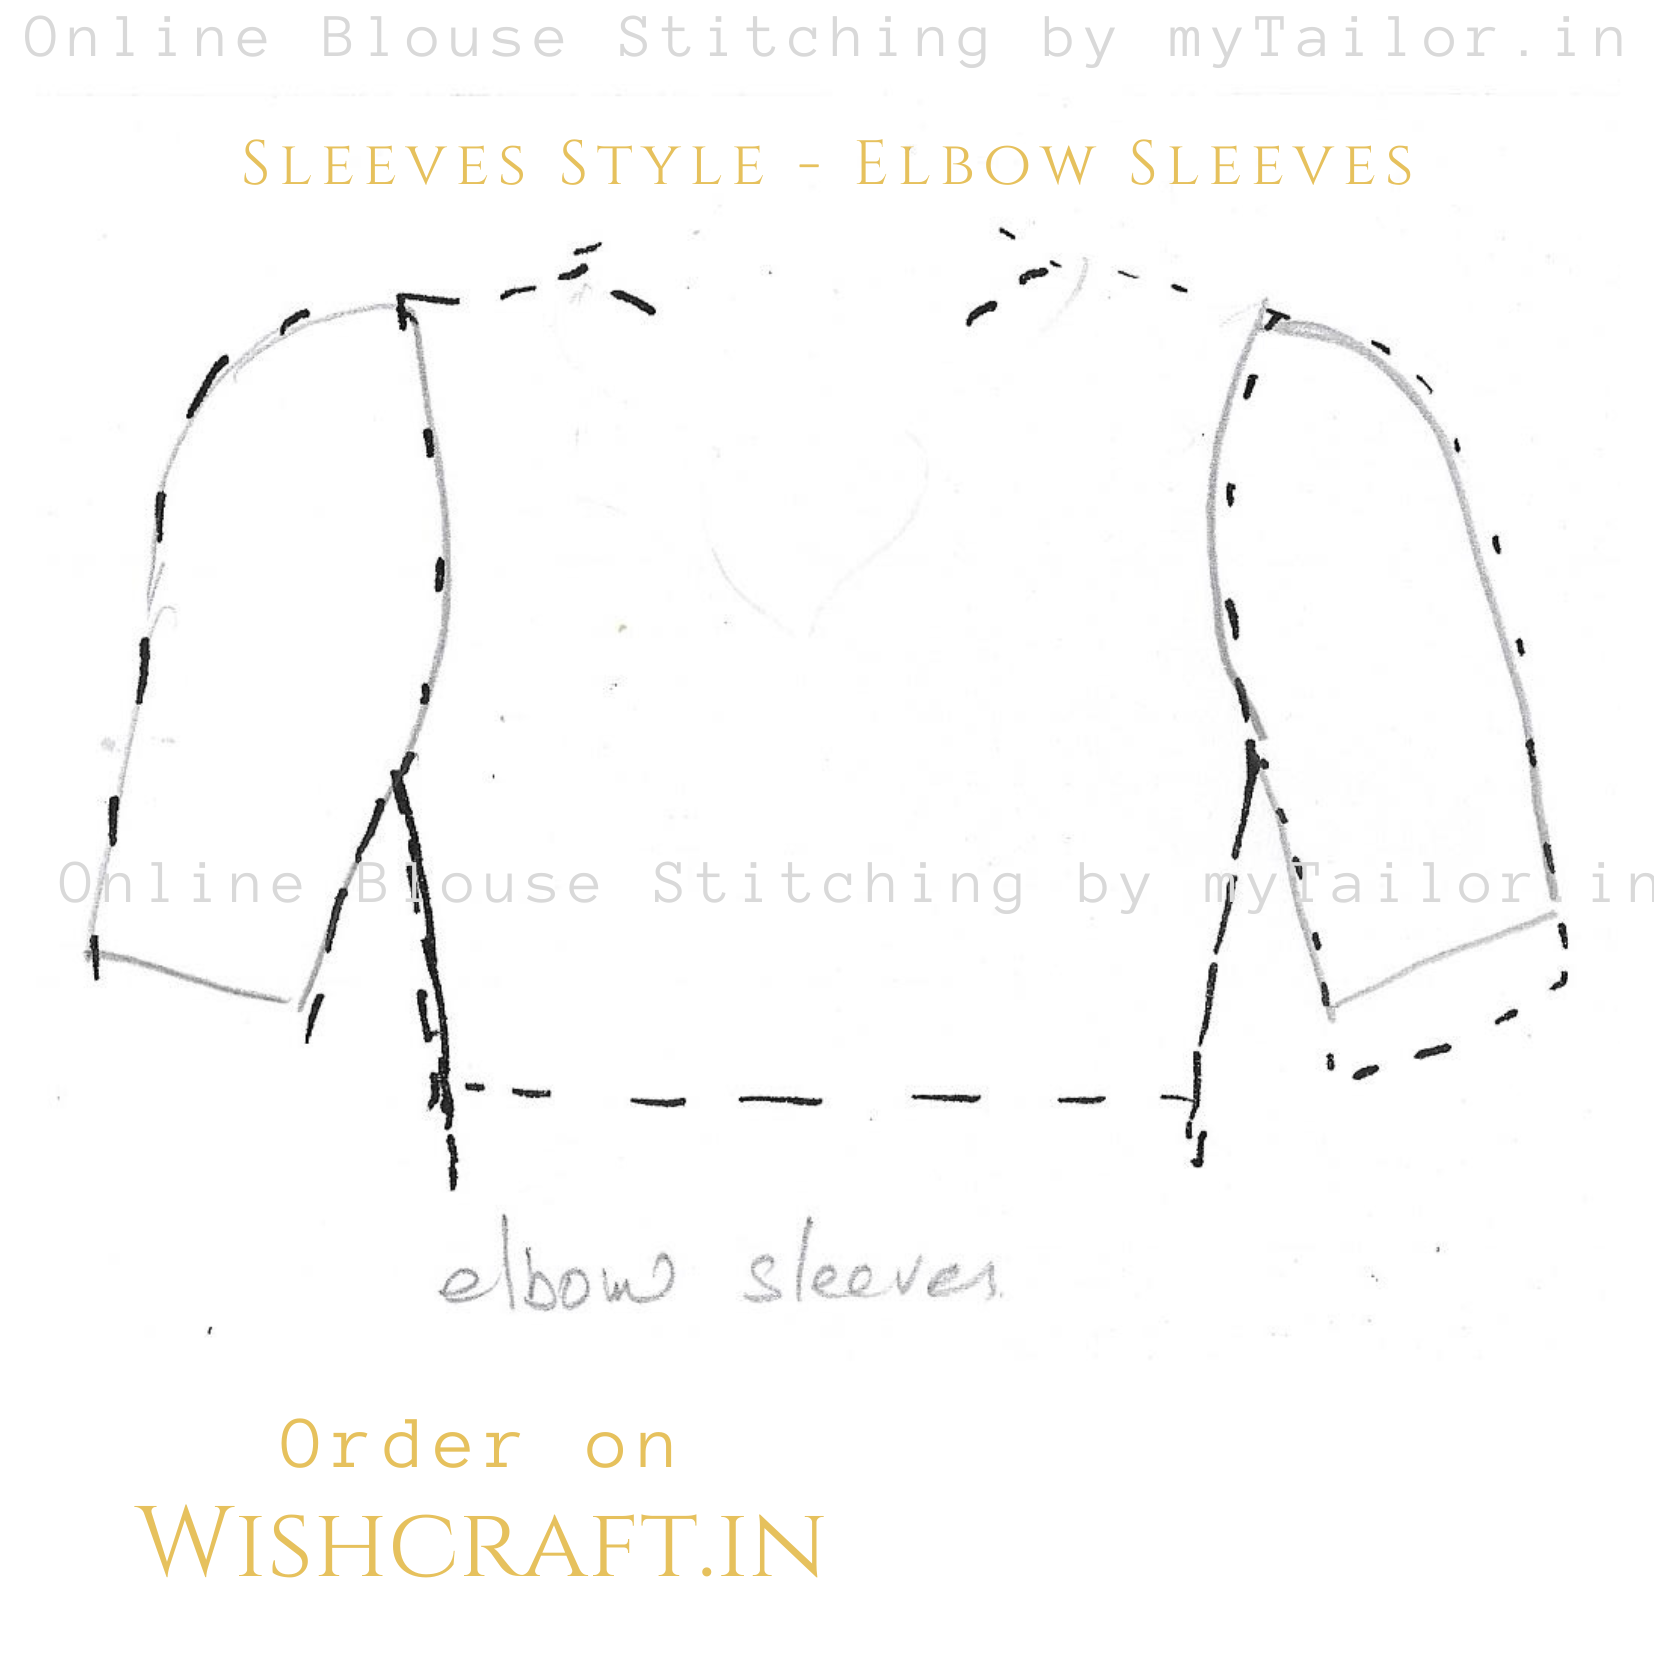 Blouse Stitching Online - Daily wear Casual Blouses